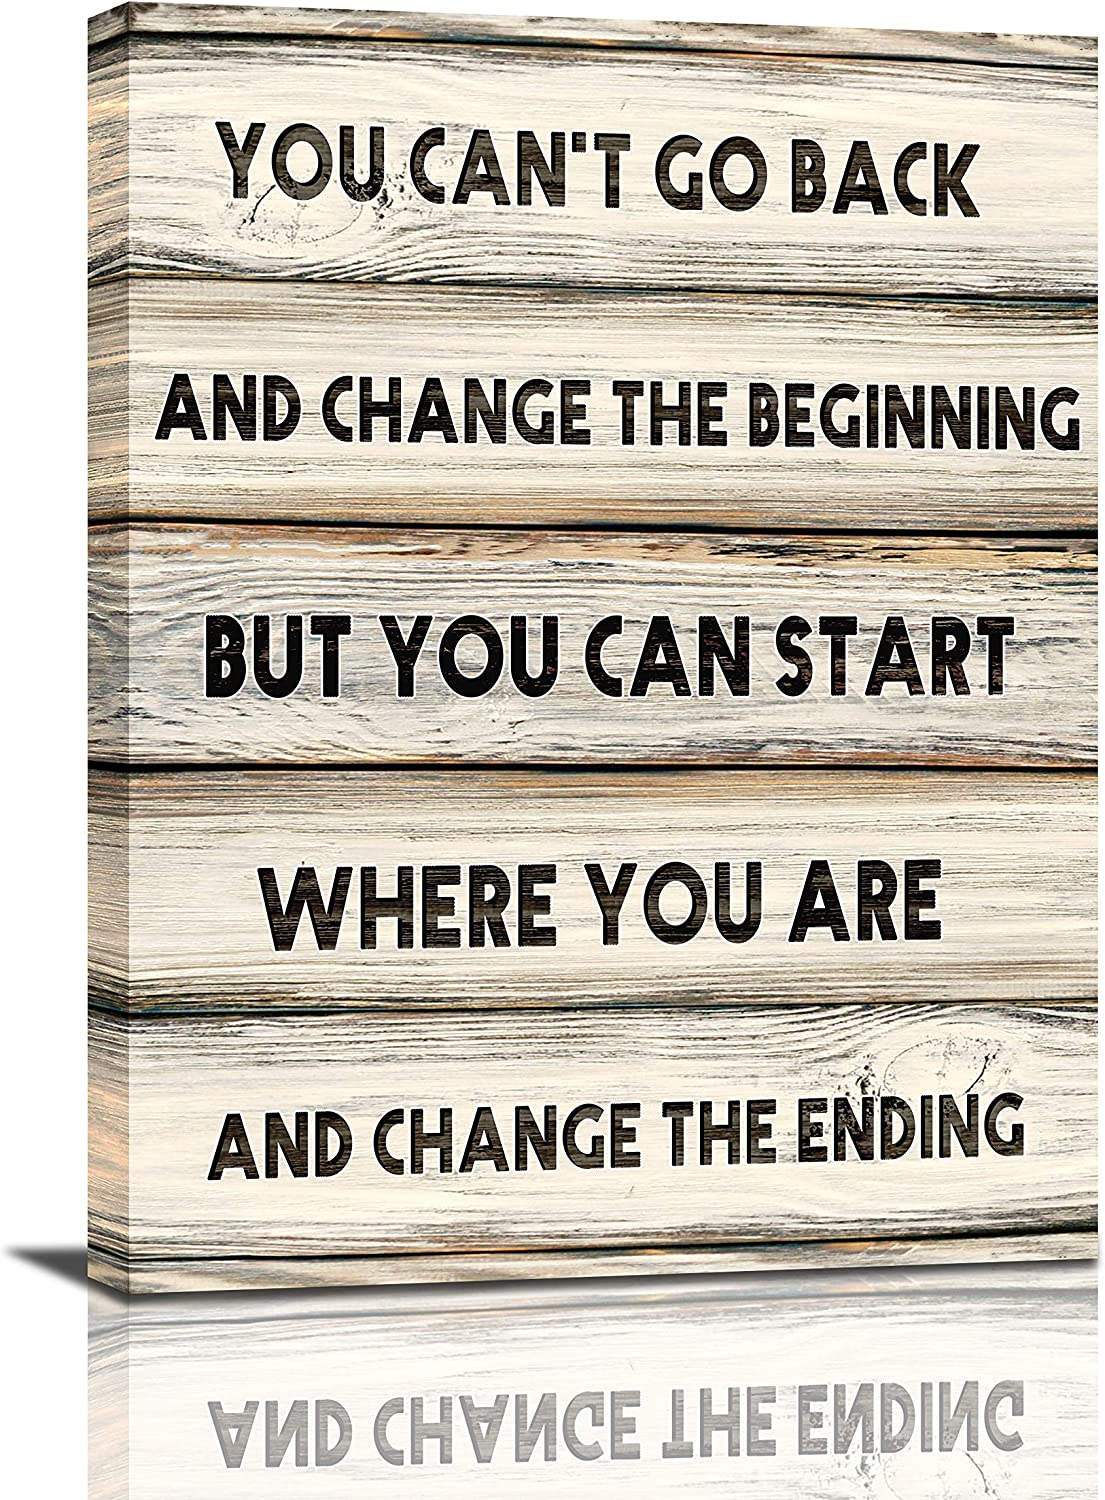 Inspirational Quotes Wall Art You Can'T Go Back Motivational Motto Canvas Print Wall Decor For Office Women Framed Modern Artwork Painting Home Decoration For Living Room Bedroom 12x16inch